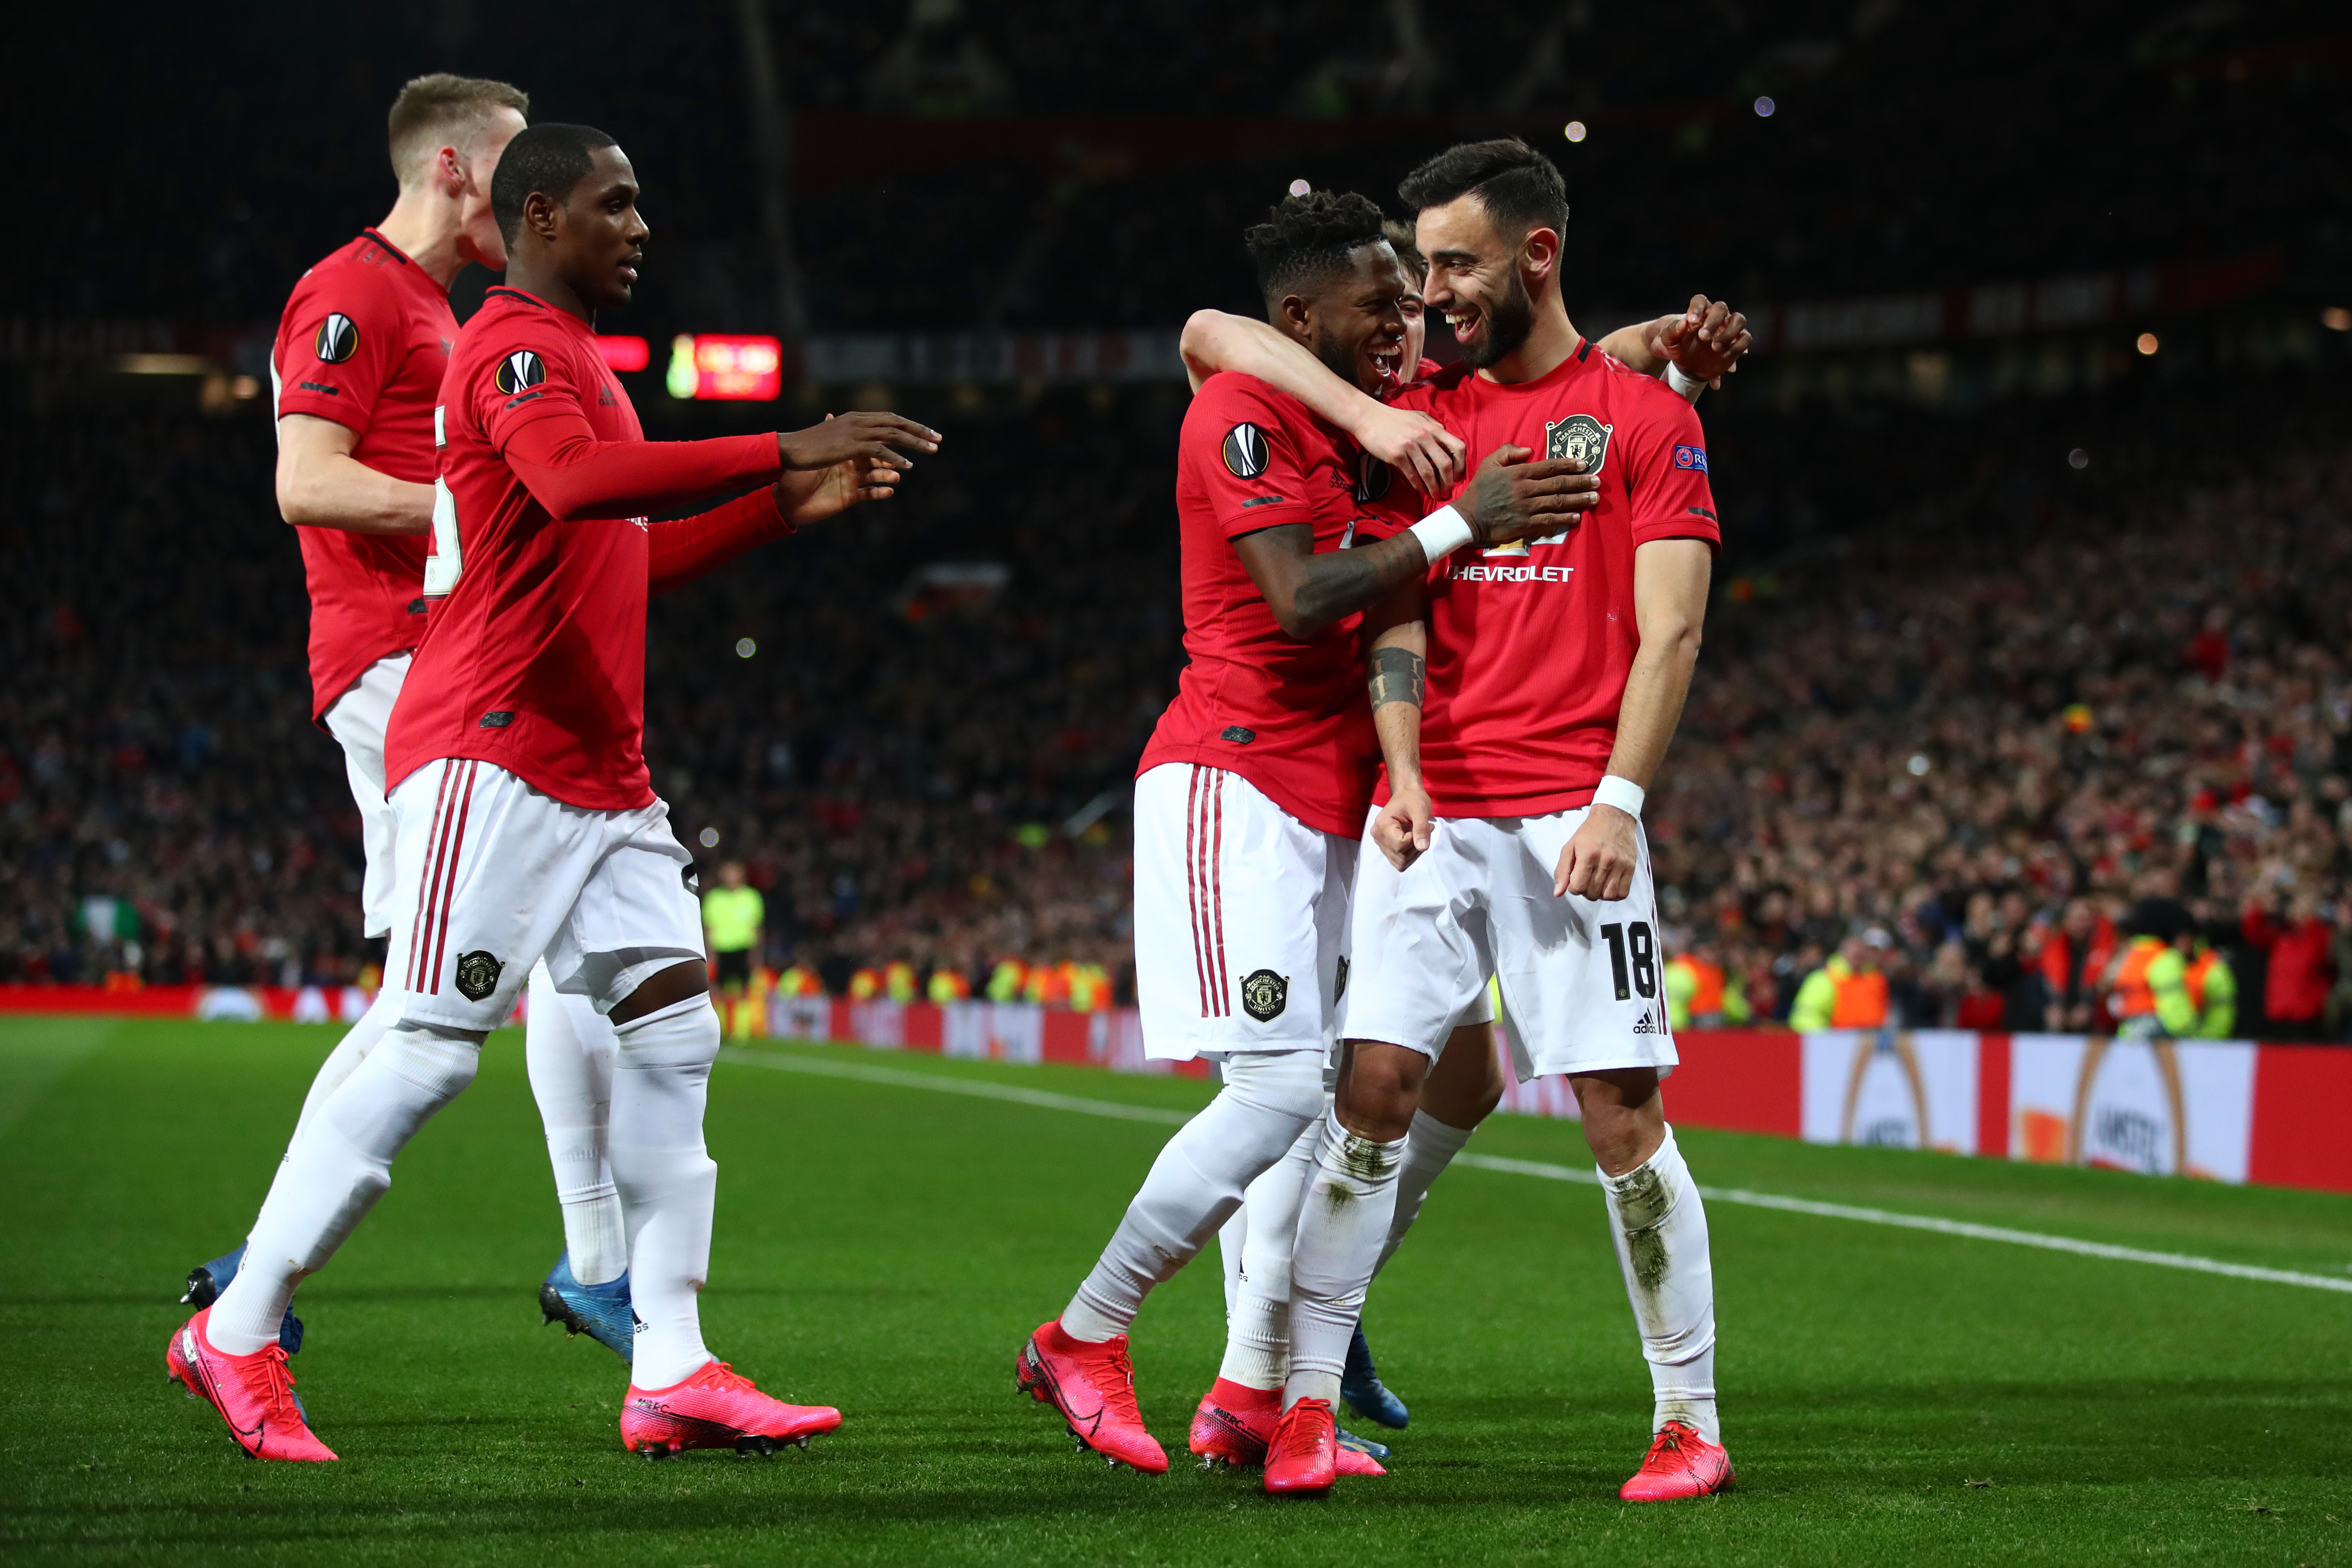 Bruno Fernandes played a massive role as United finished second in the league last season (Photo by Clive Brunskill/Getty Images)